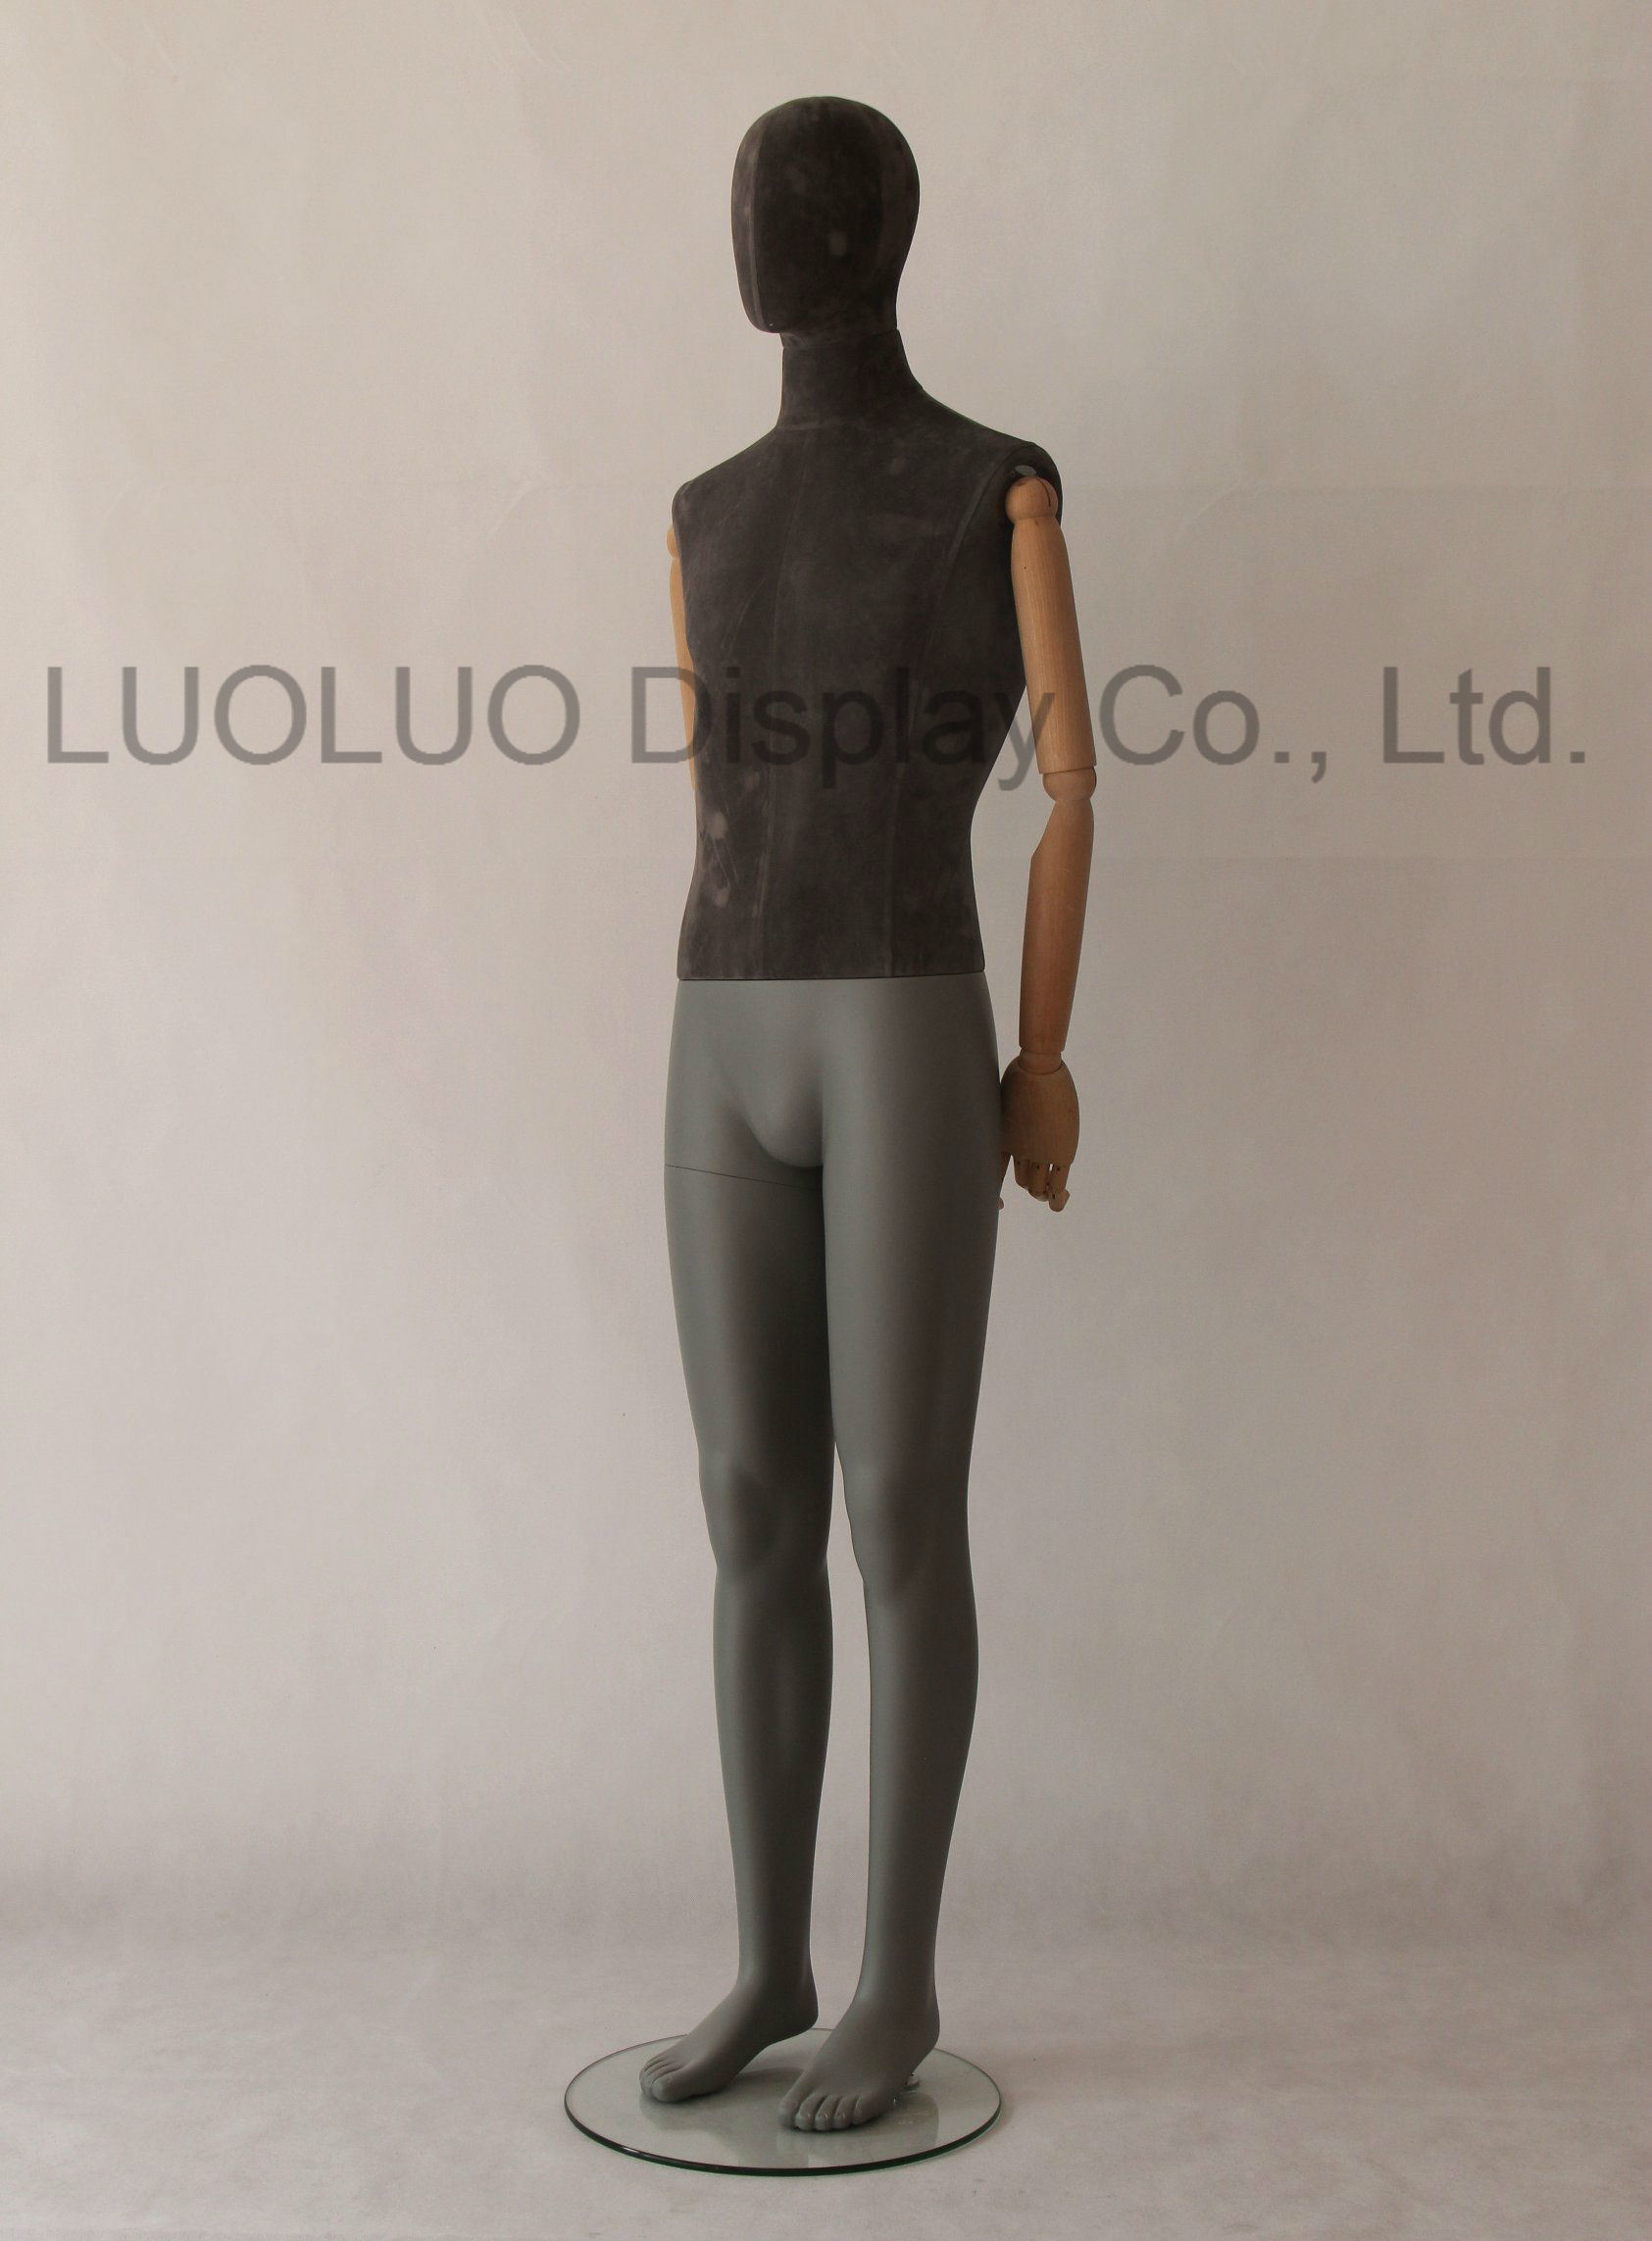 New Linen Wrapped Male Mannequin with Wooden Arms